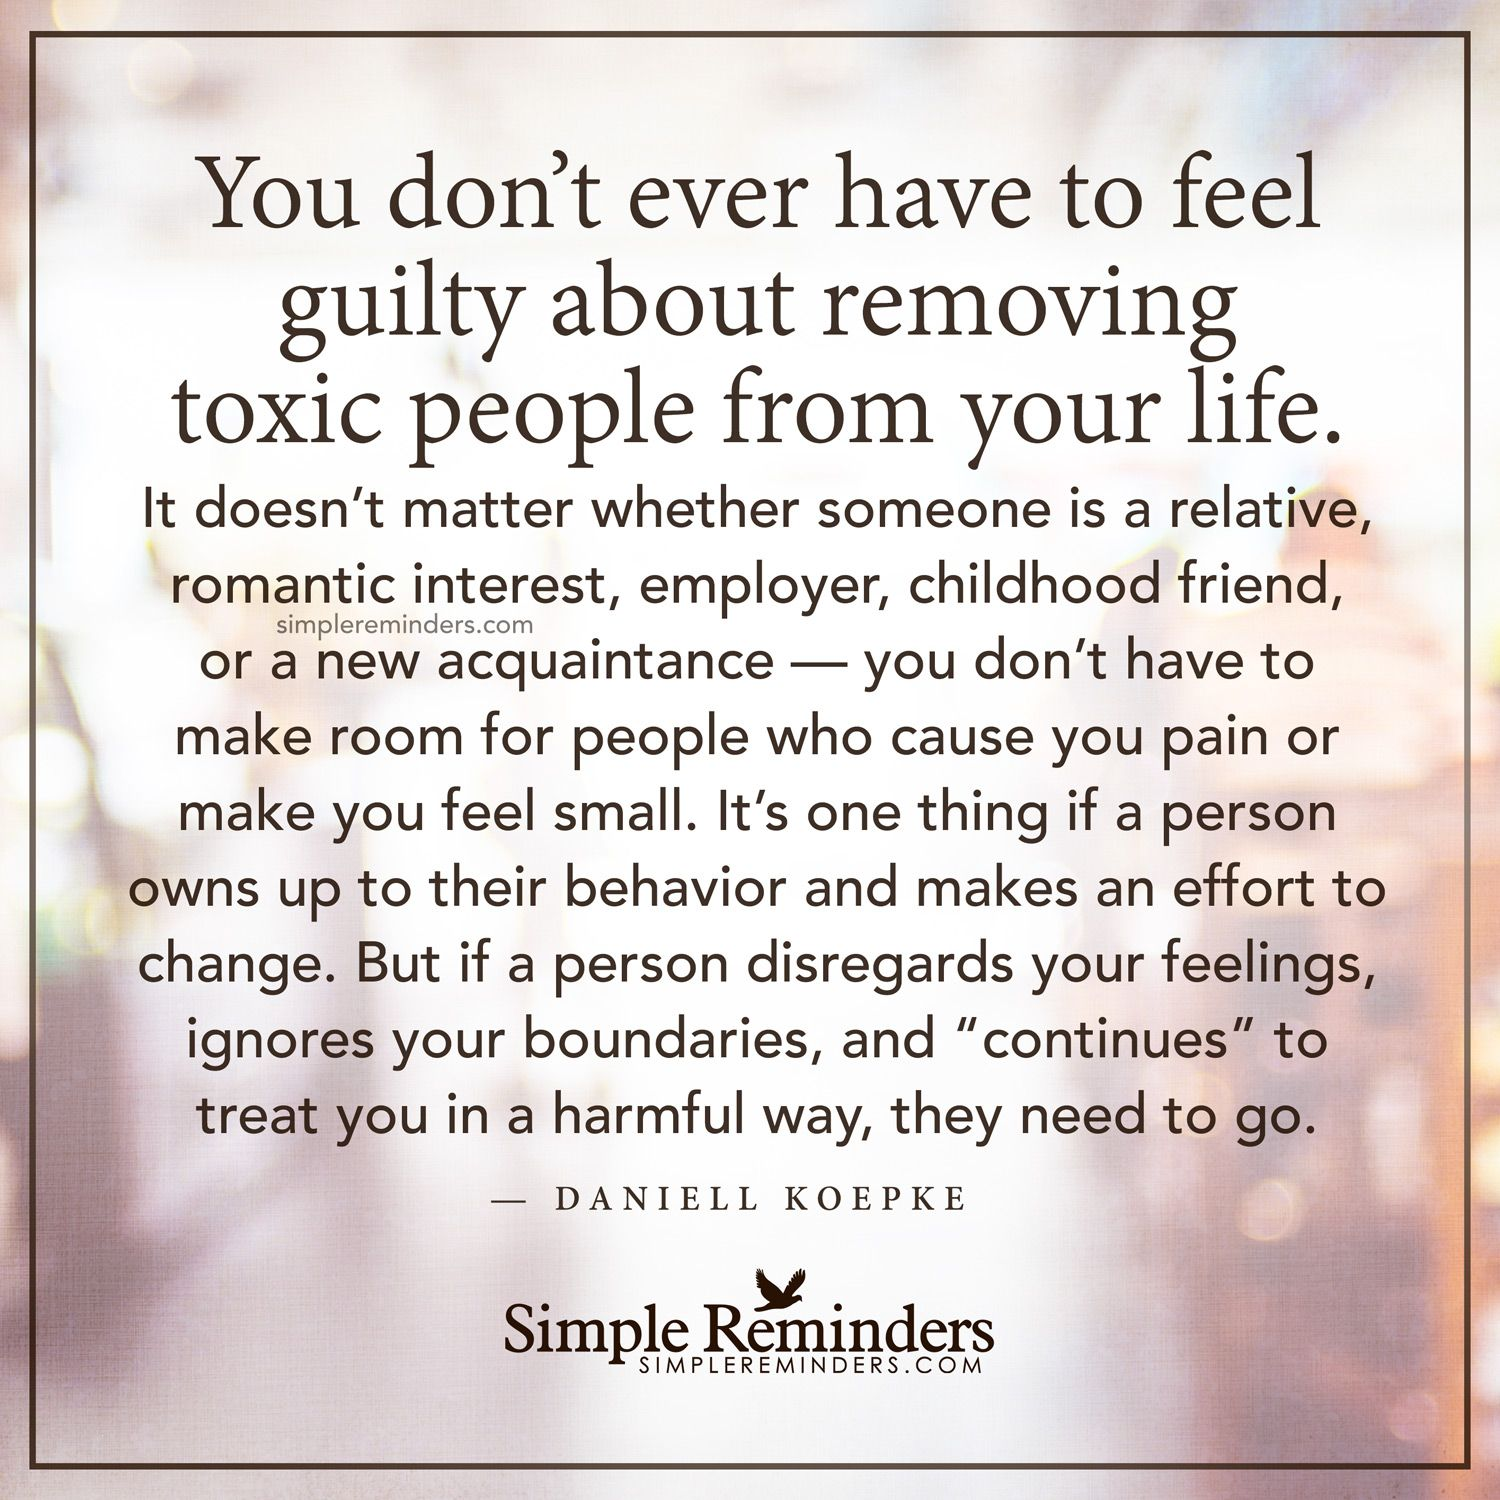 Remove toxic people from your life You don't ever have to